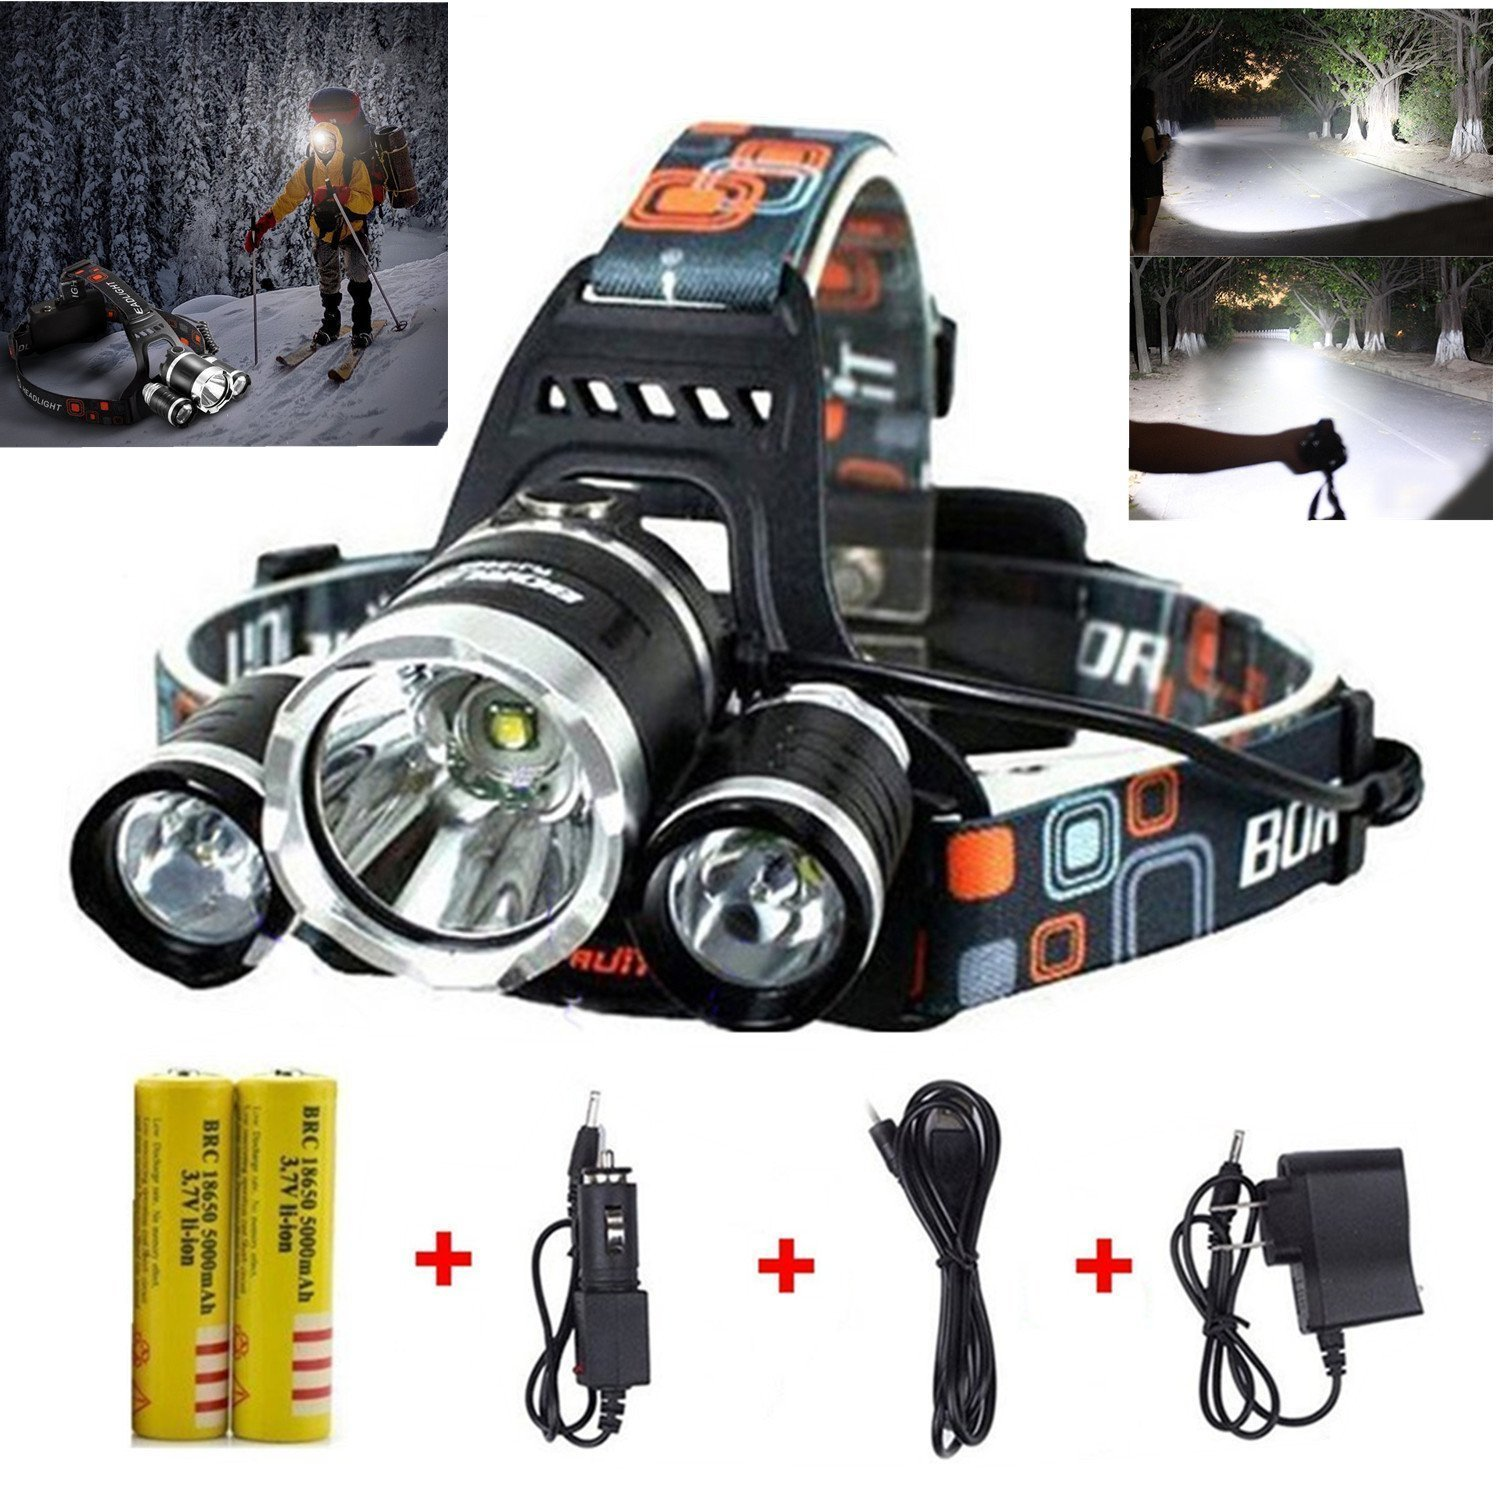 Atv,rv,boat & Other Vehicle Symbol Of The Brand Bicycle Accessories Bike Flashlight Headband/helmet Strap Mount Head Strap For Led Headlamp/head Car Styling #30 Automobiles & Motorcycles